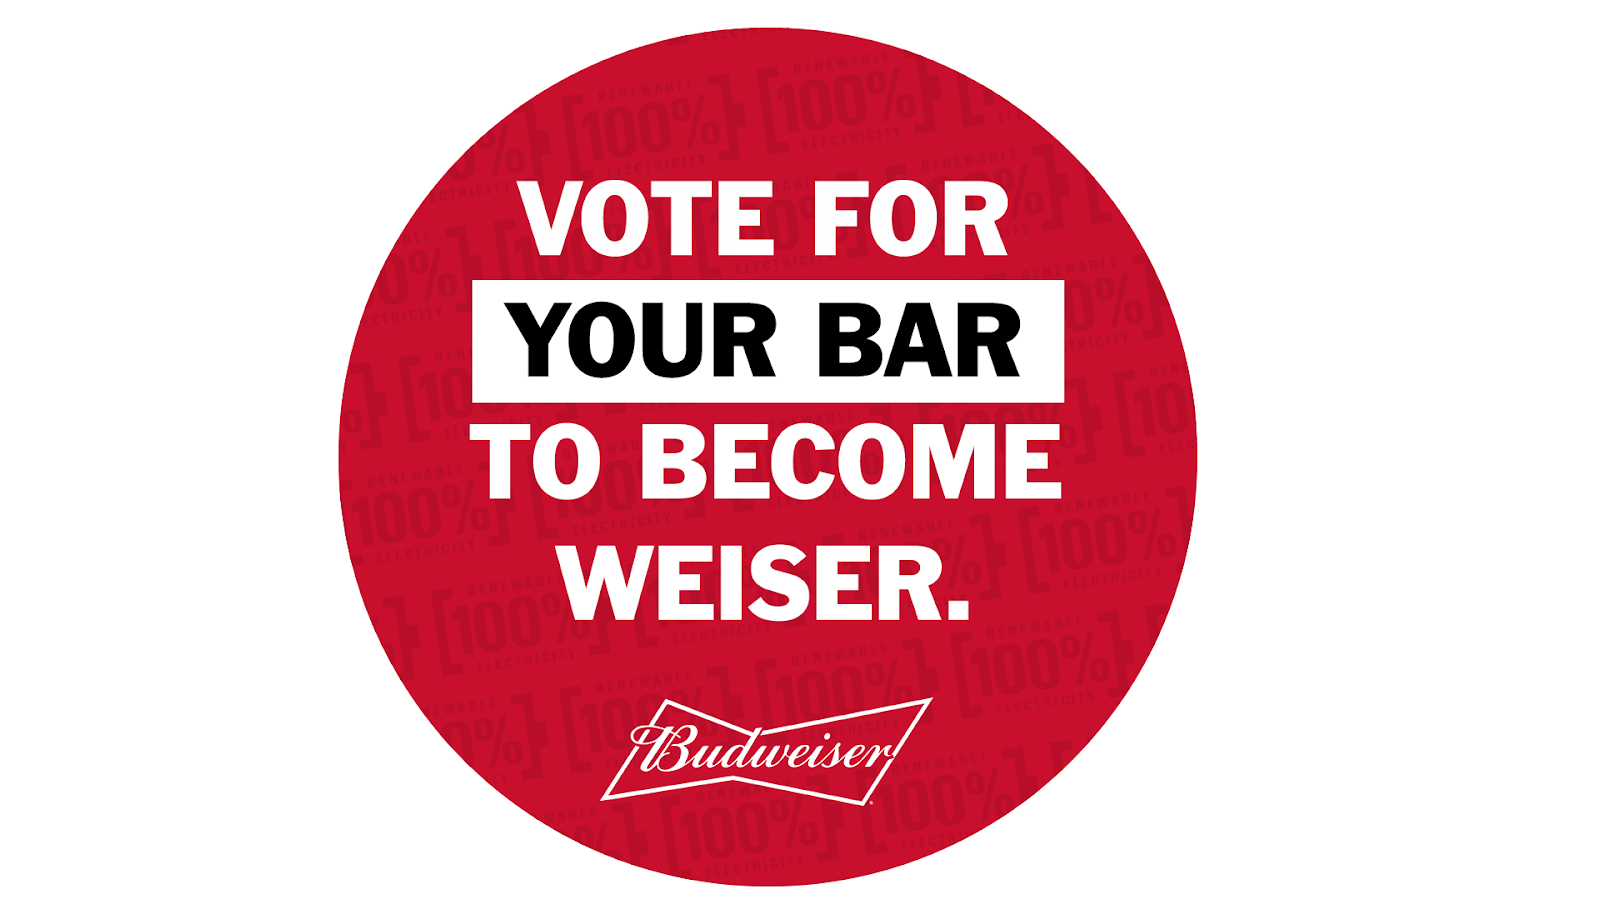 Signage encouraging people to vote for their bar to become weiser, as part of Budweiser's Clio Winning Belgian case campaign